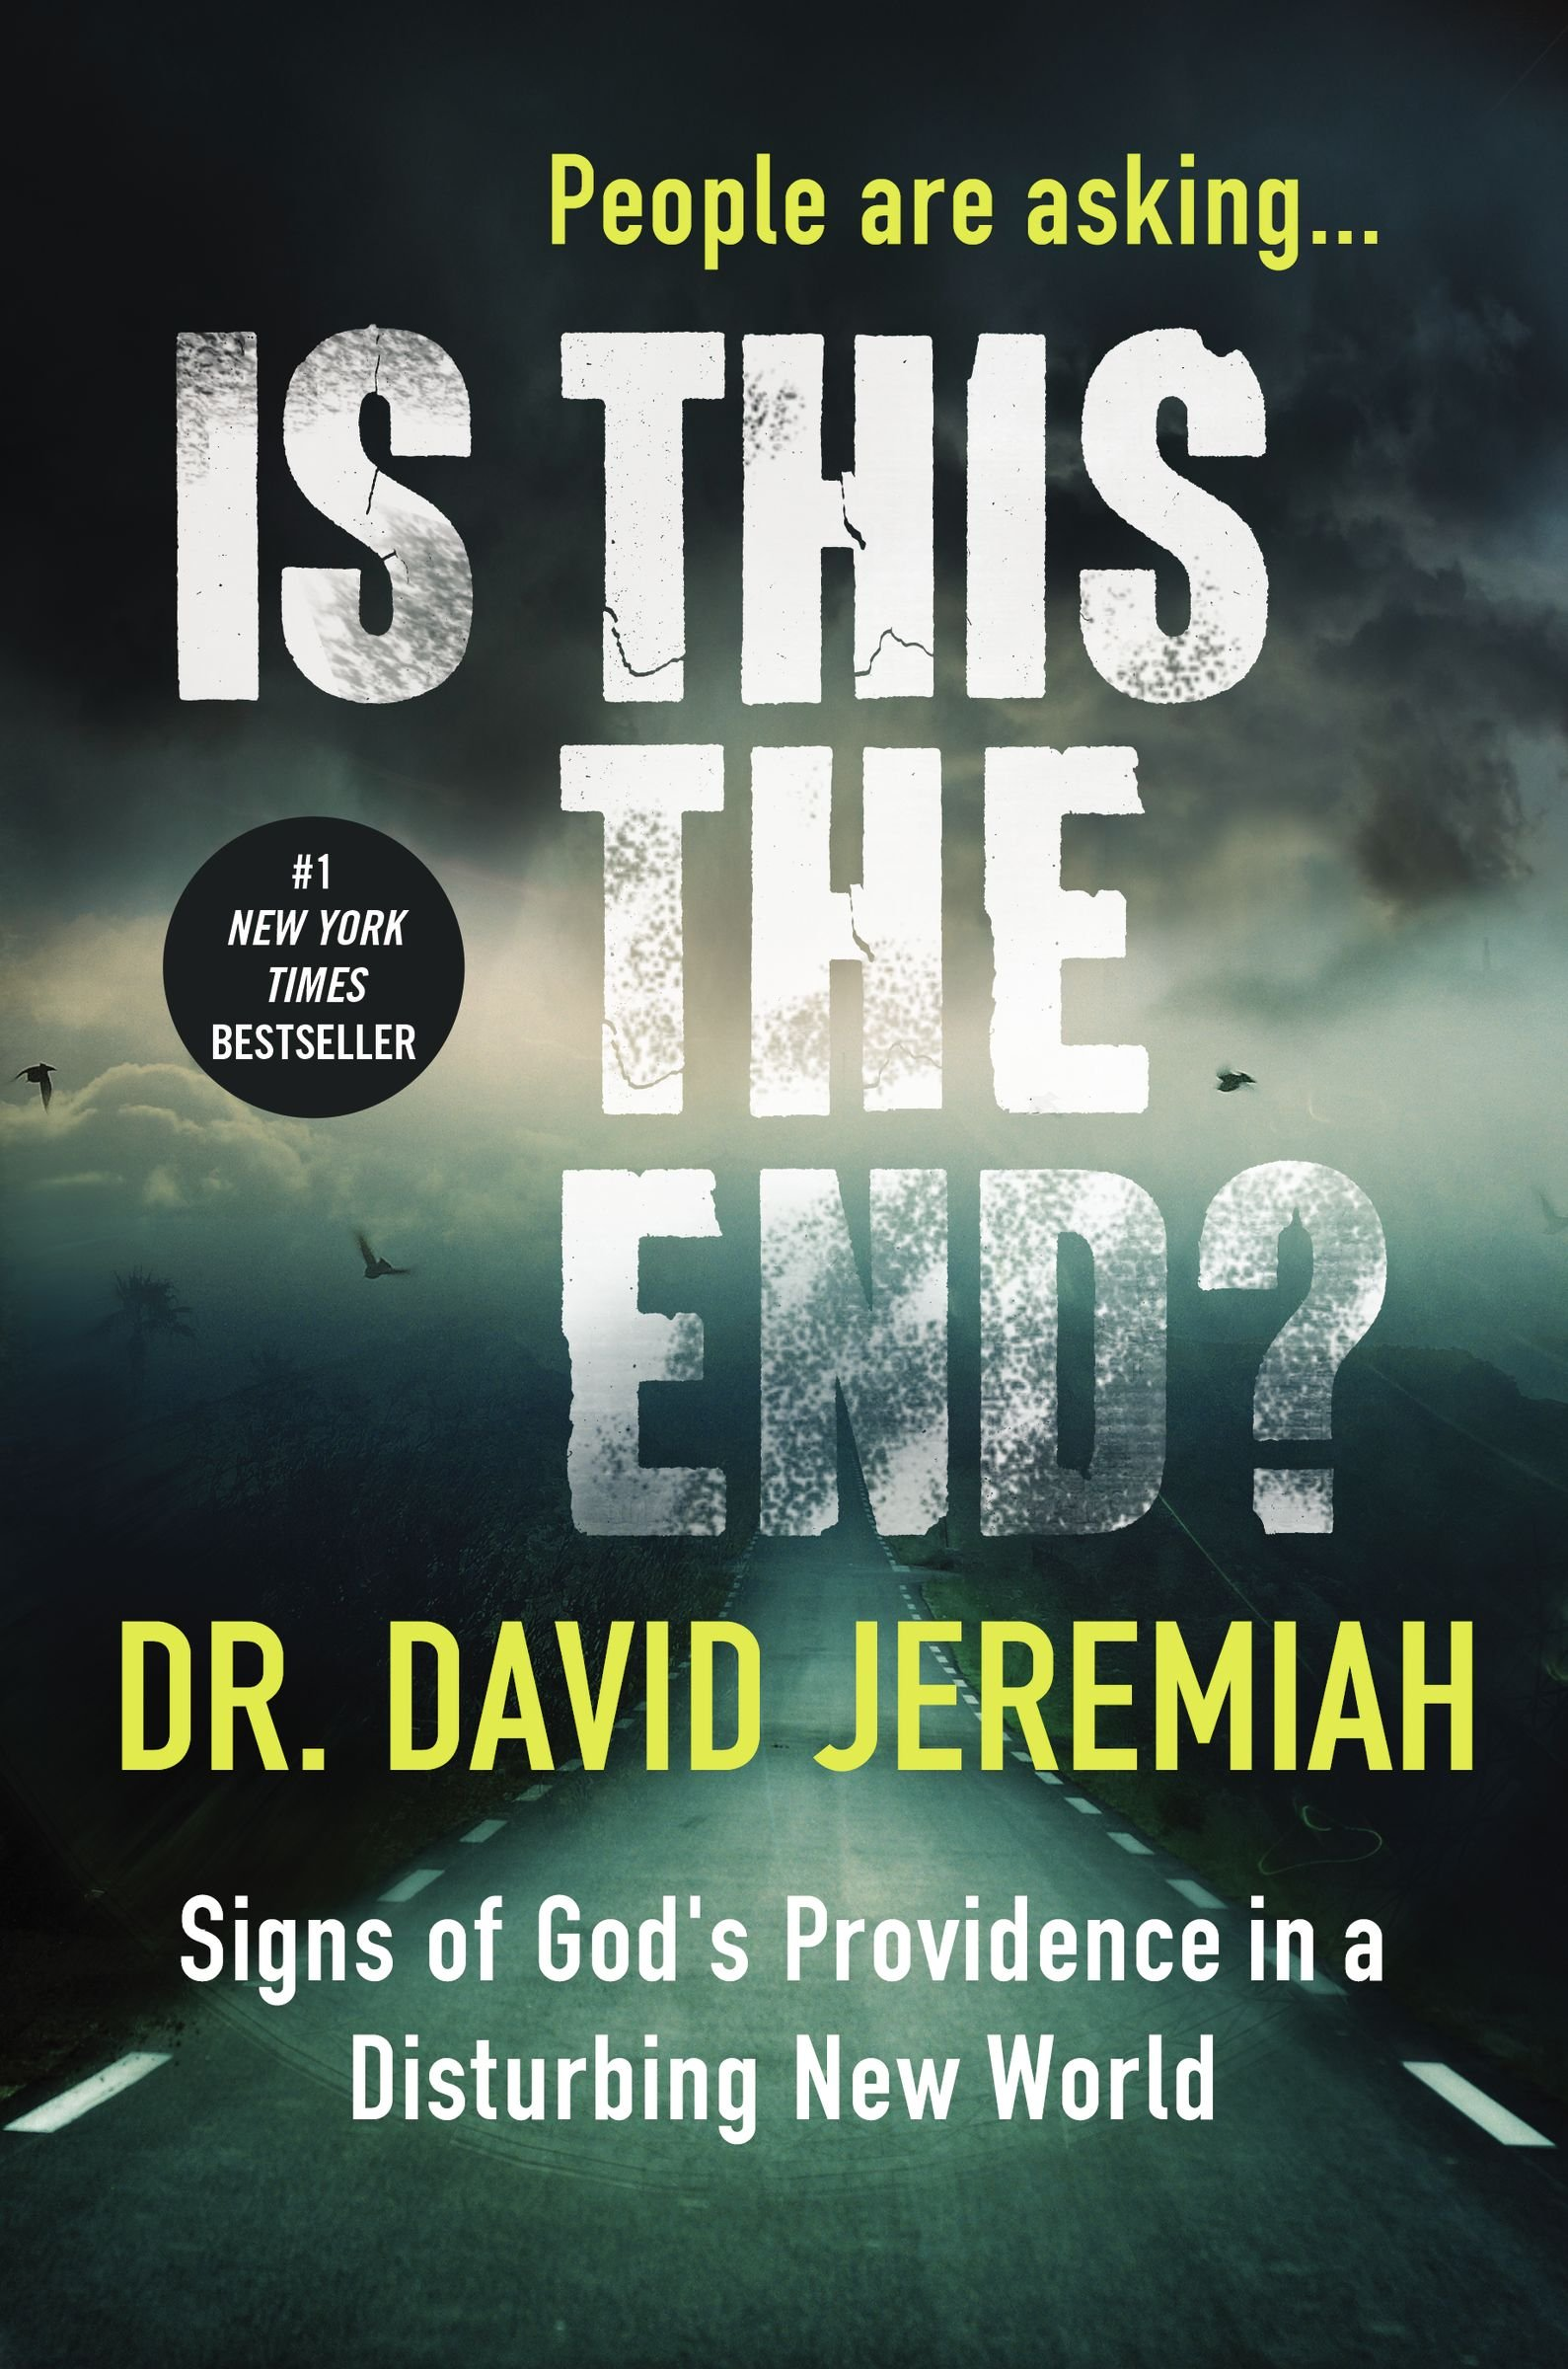 Is this the end signs of god s providence in a disturbing new world david jeremiah 9780718079864 amazon com books